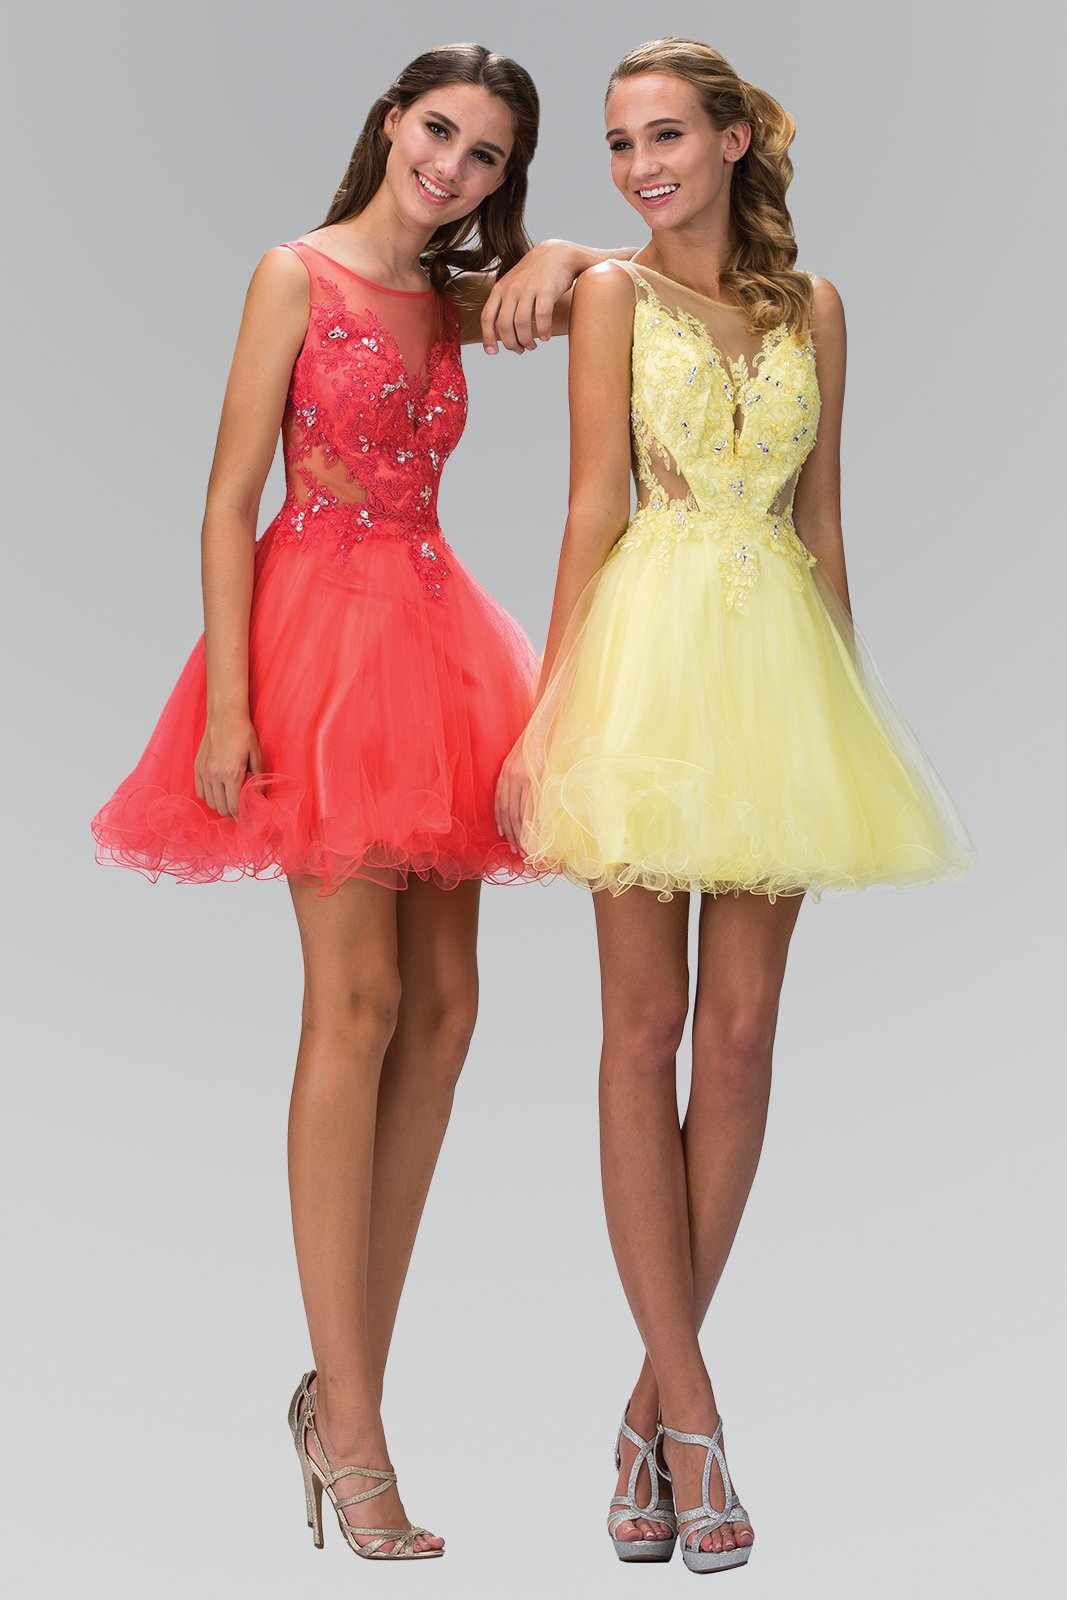 Yellow Sheer Bodice With Sheer Back and Tulled Skirt